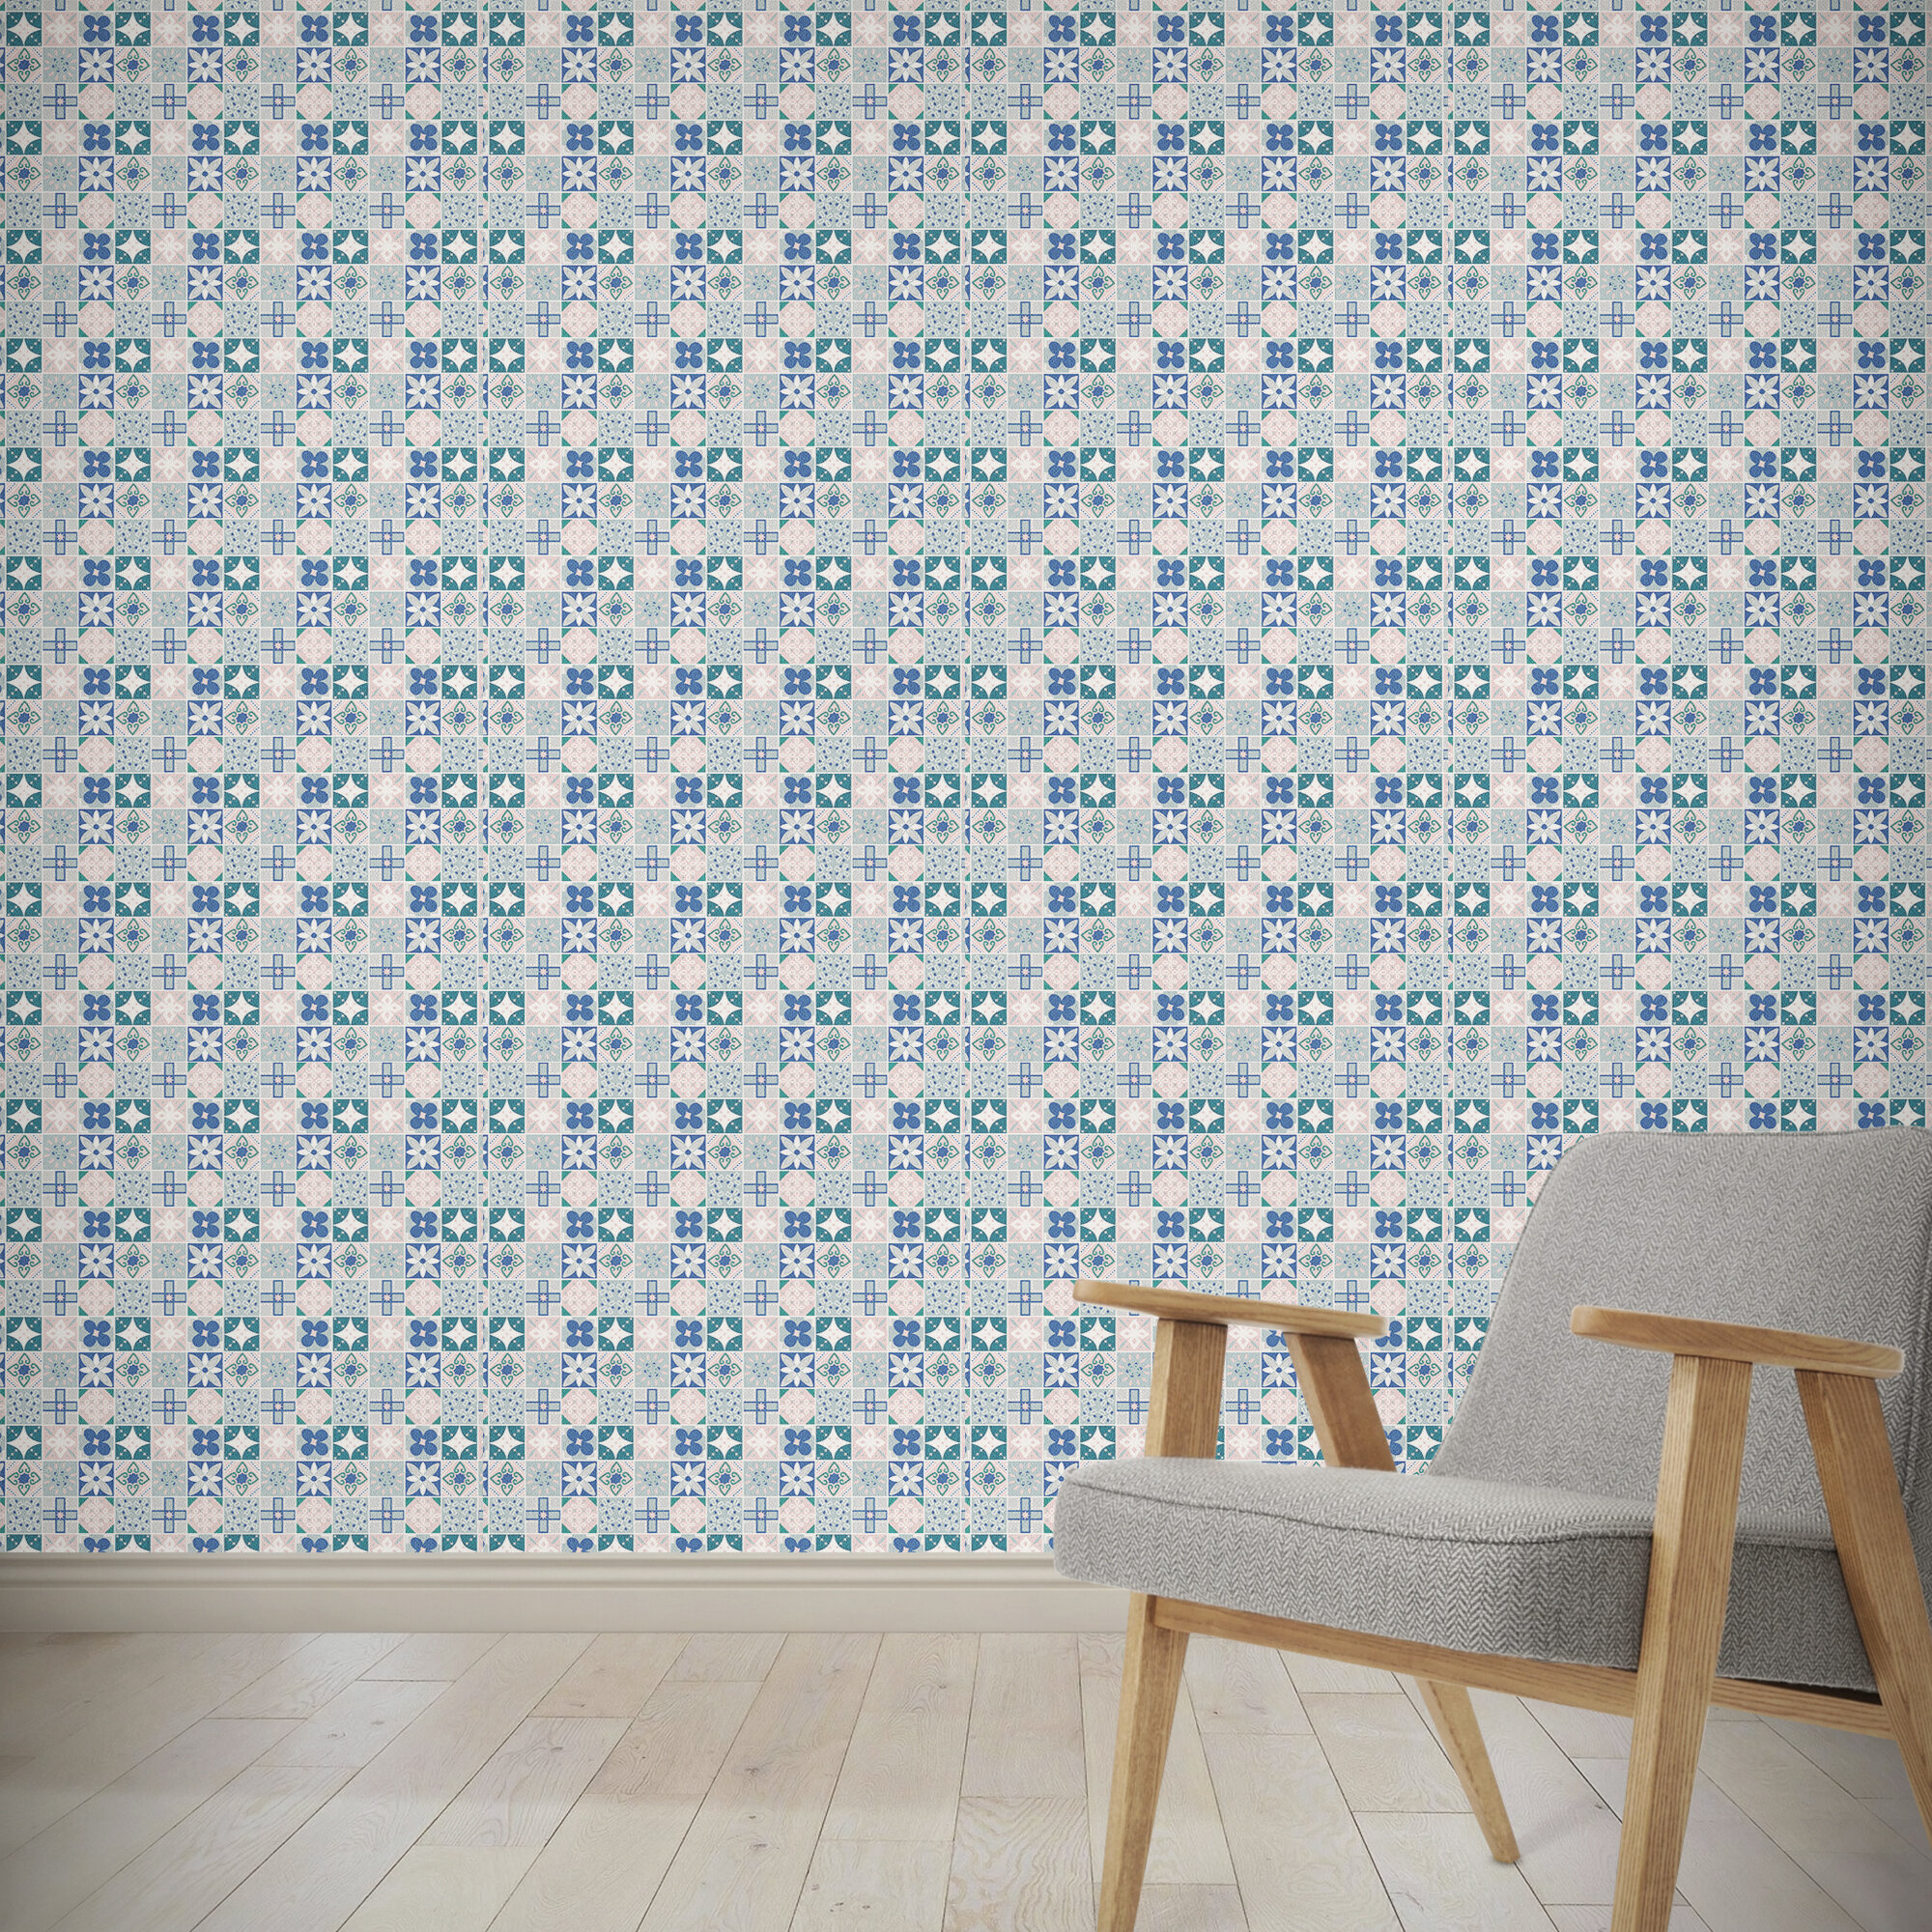 Wrought Studio Holub 4 L X 24 W And Stick Wallpaper Panel Wayfair